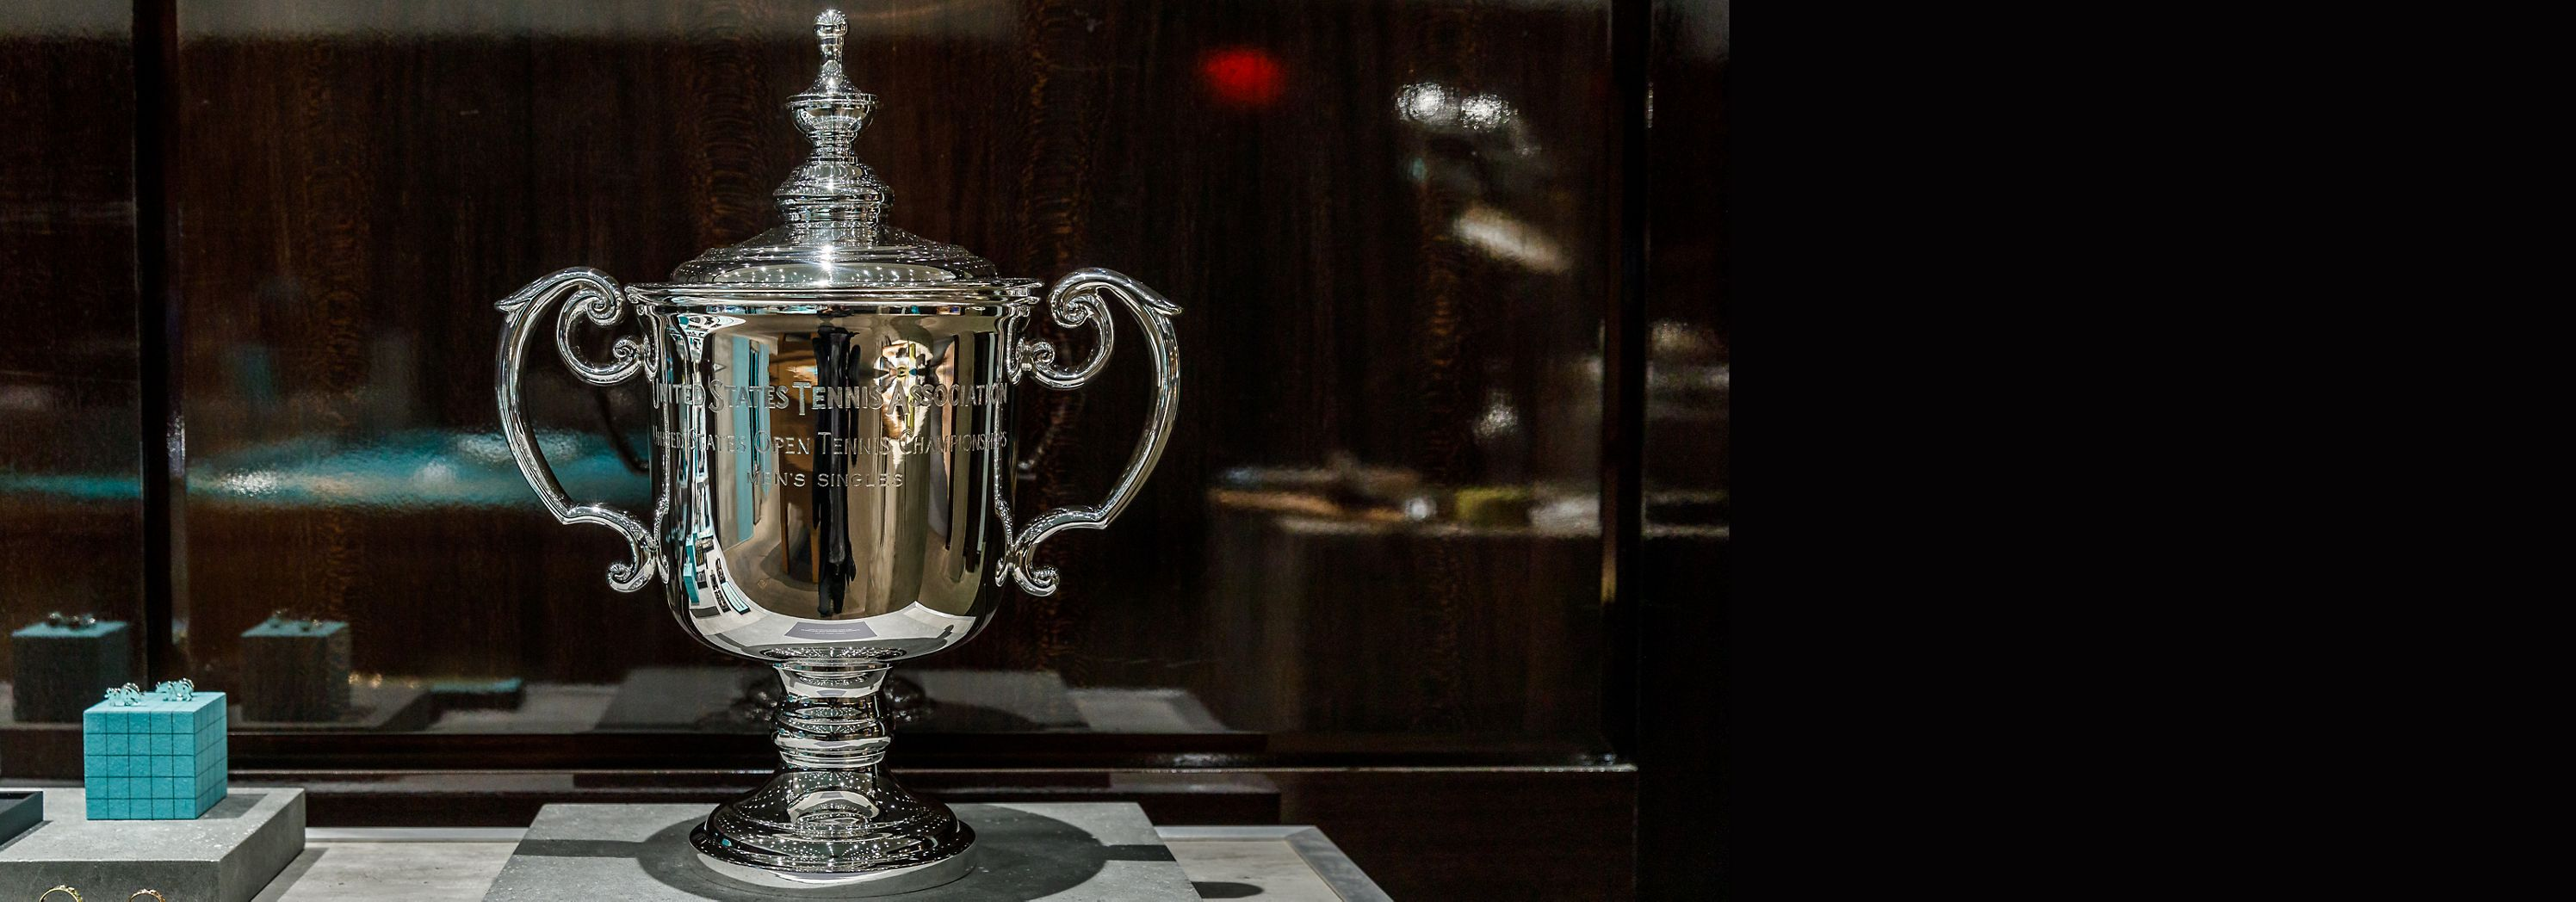 Tiffany & Co. Sports and Trophies